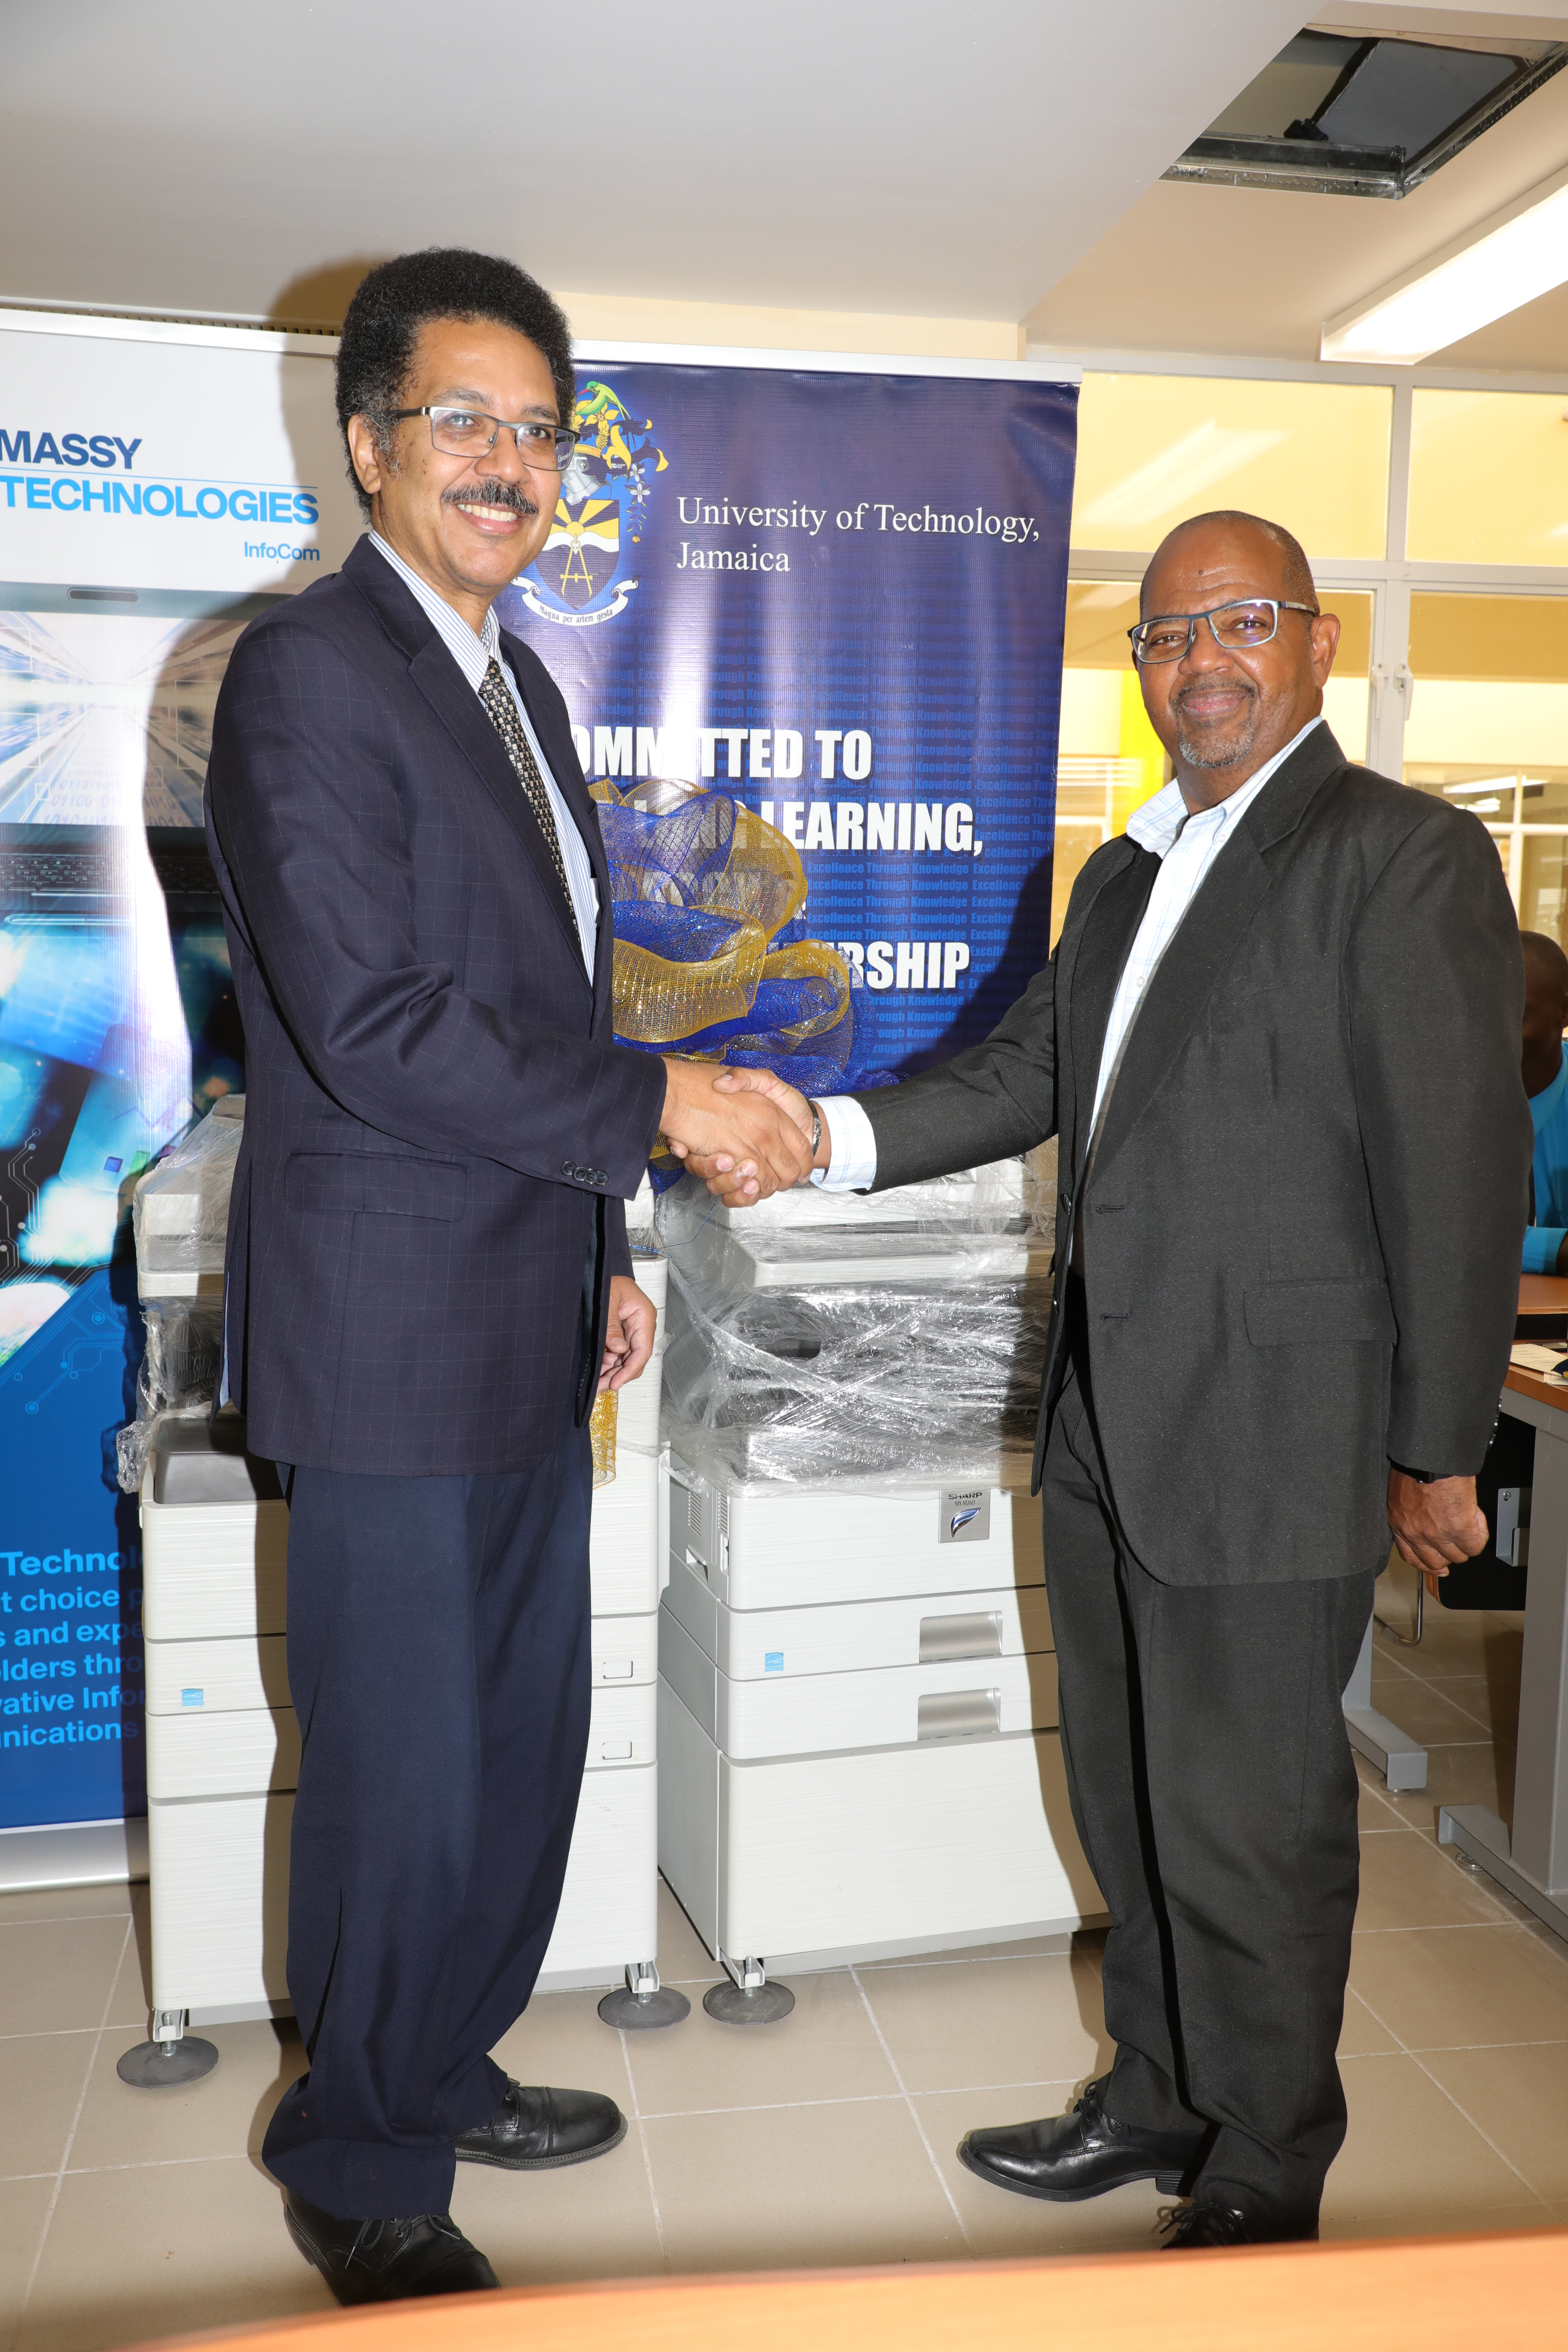 UTech, Jamaica Receives Donation of Printers from Massy Technologies